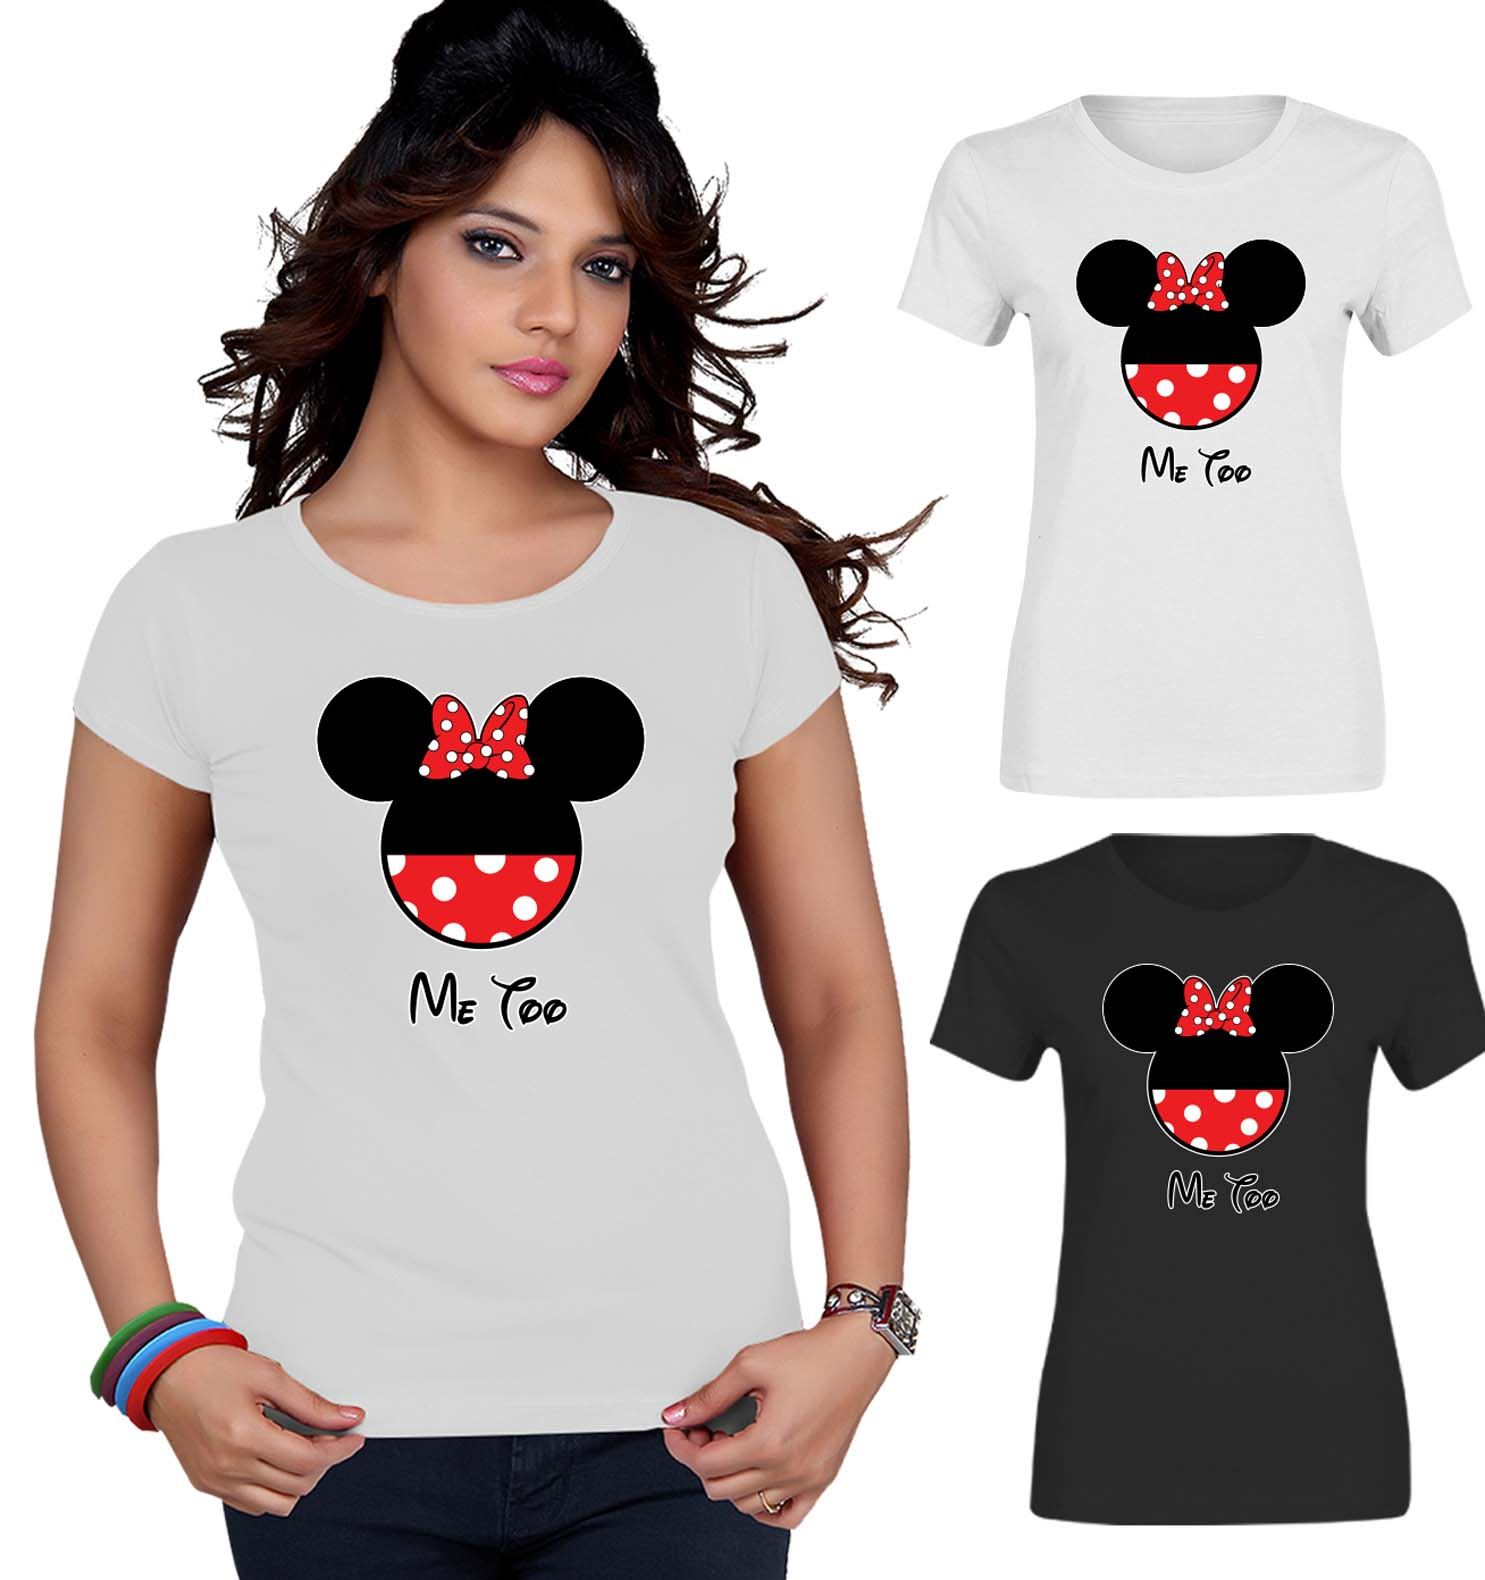 Drop Tail Slounge T-Shirt I Love The 80s Music Wave Printed Ladies Off Shoulder